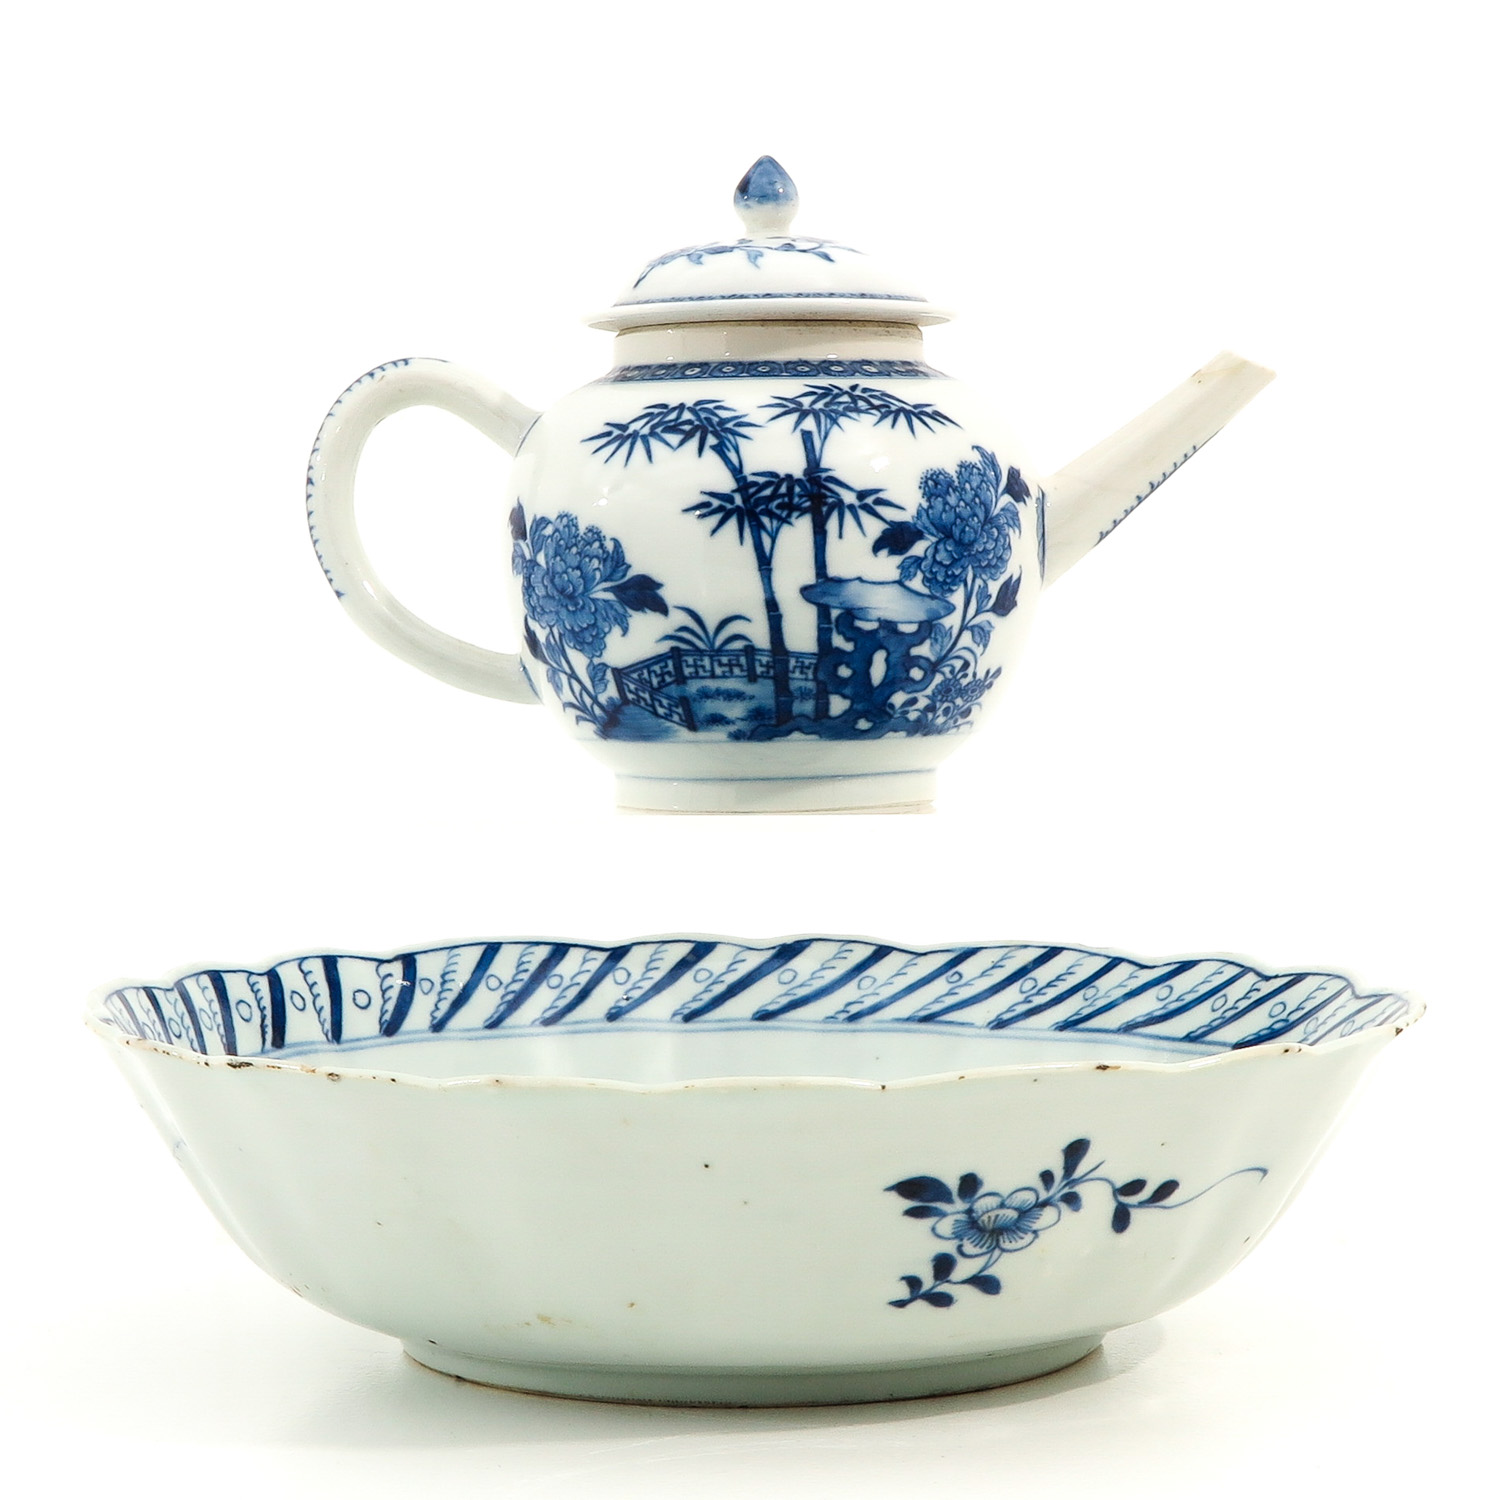 A Blue and White Bowl and Teapot - Image 3 of 10